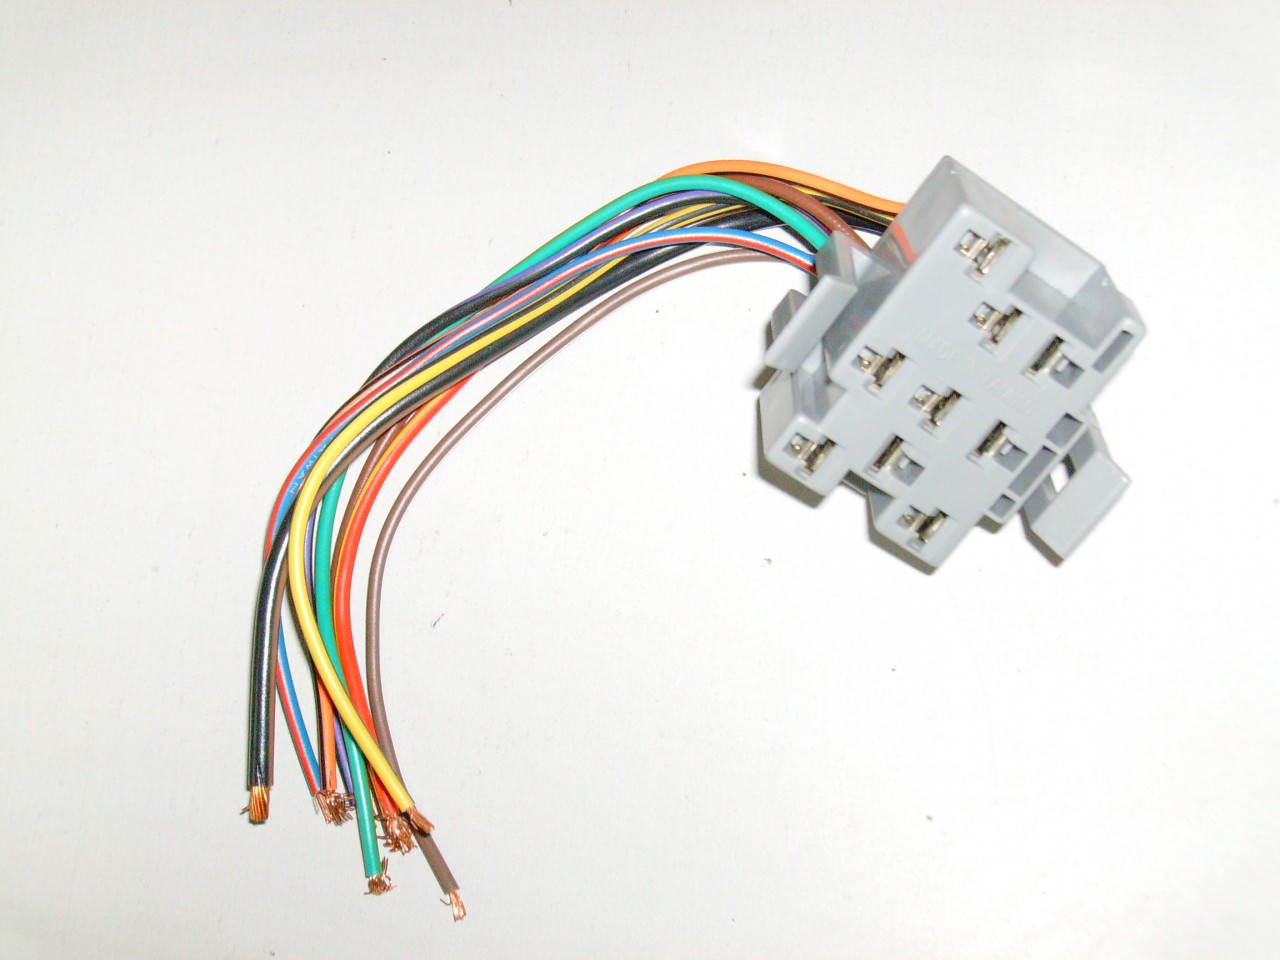 hight resolution of  mustang headlight switch plug wire harness socket gt lx cobra price 25 98 image 1